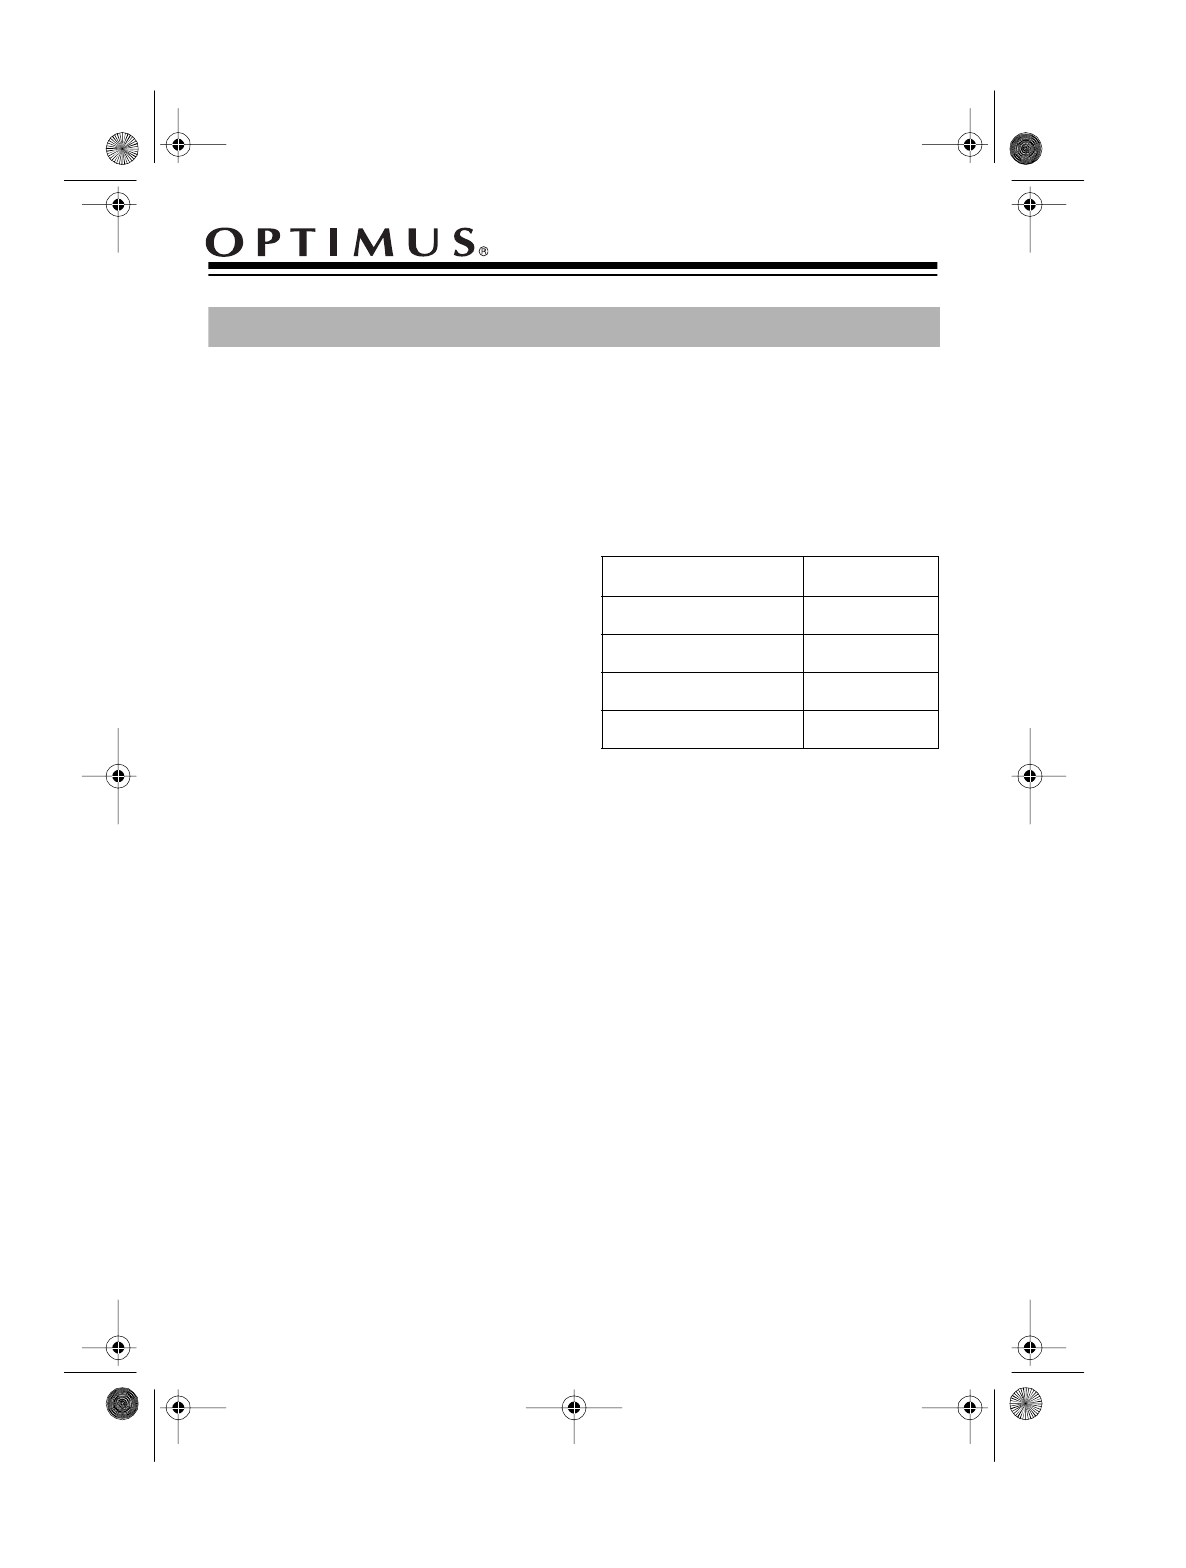 Optimus car speaker 12 1717 user guide manualsonline 1997 tandy corporation cheapraybanclubmaster Image collections